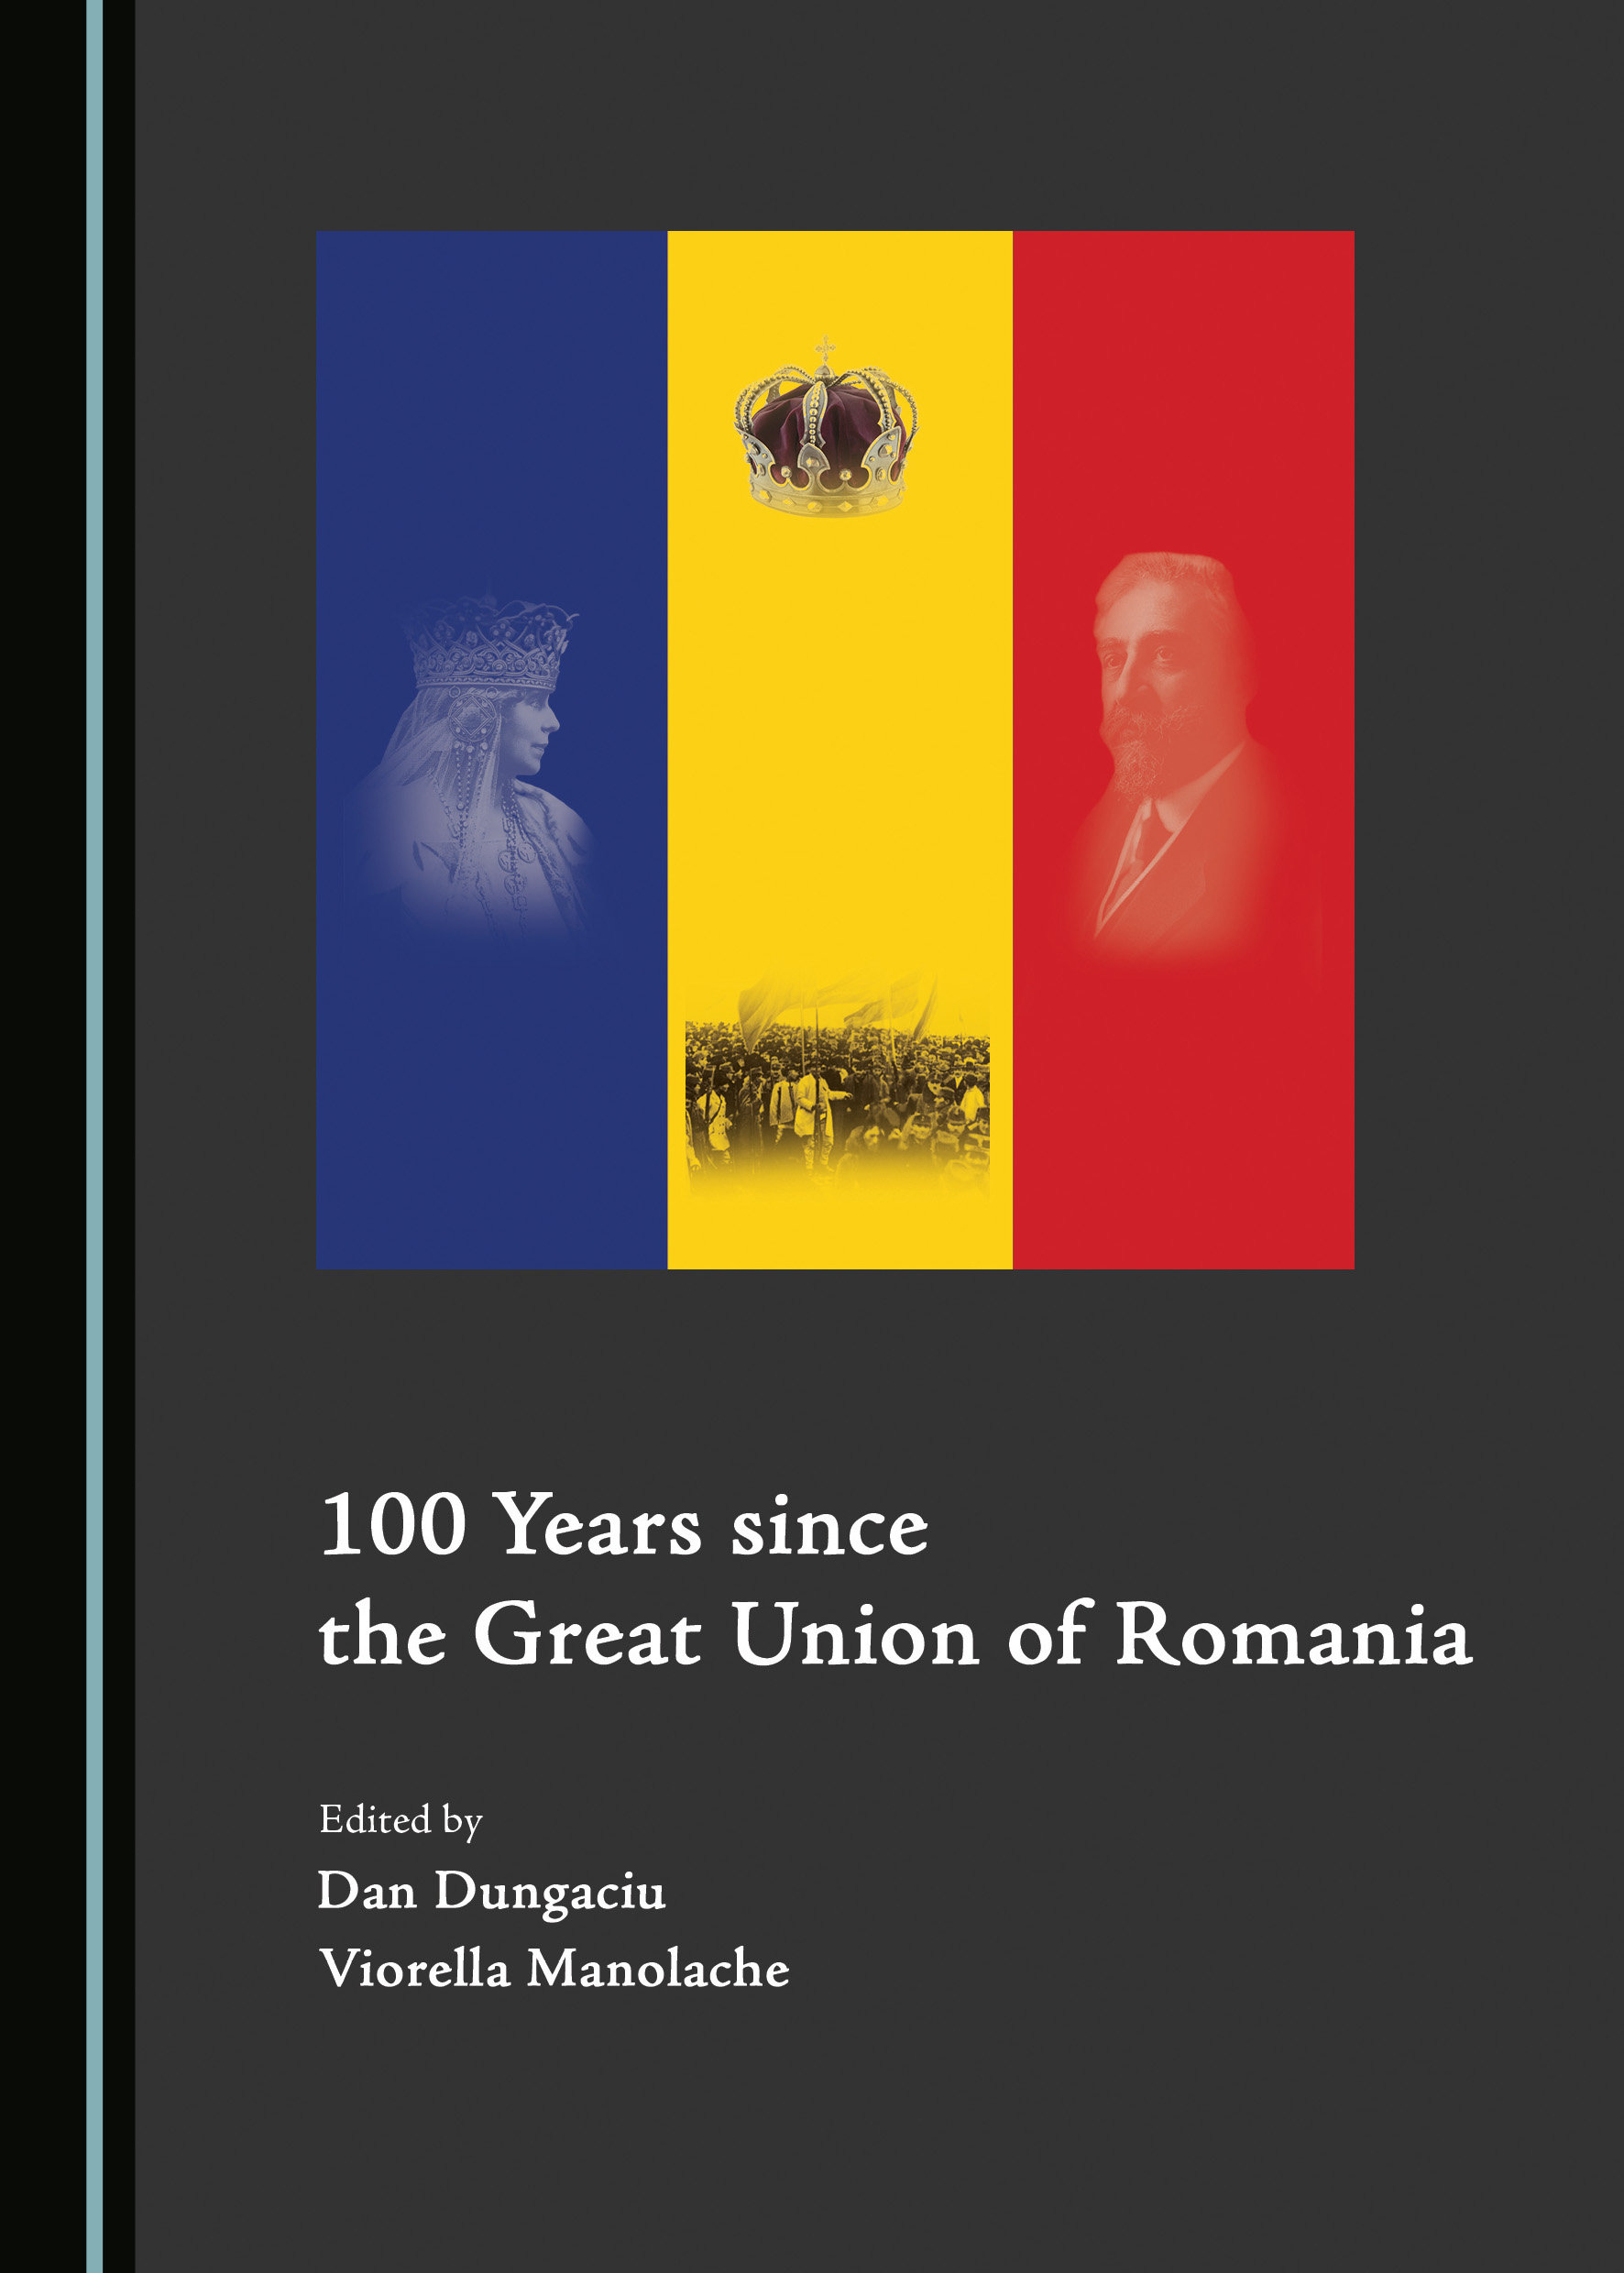 100 Years since the Great Union of Romania